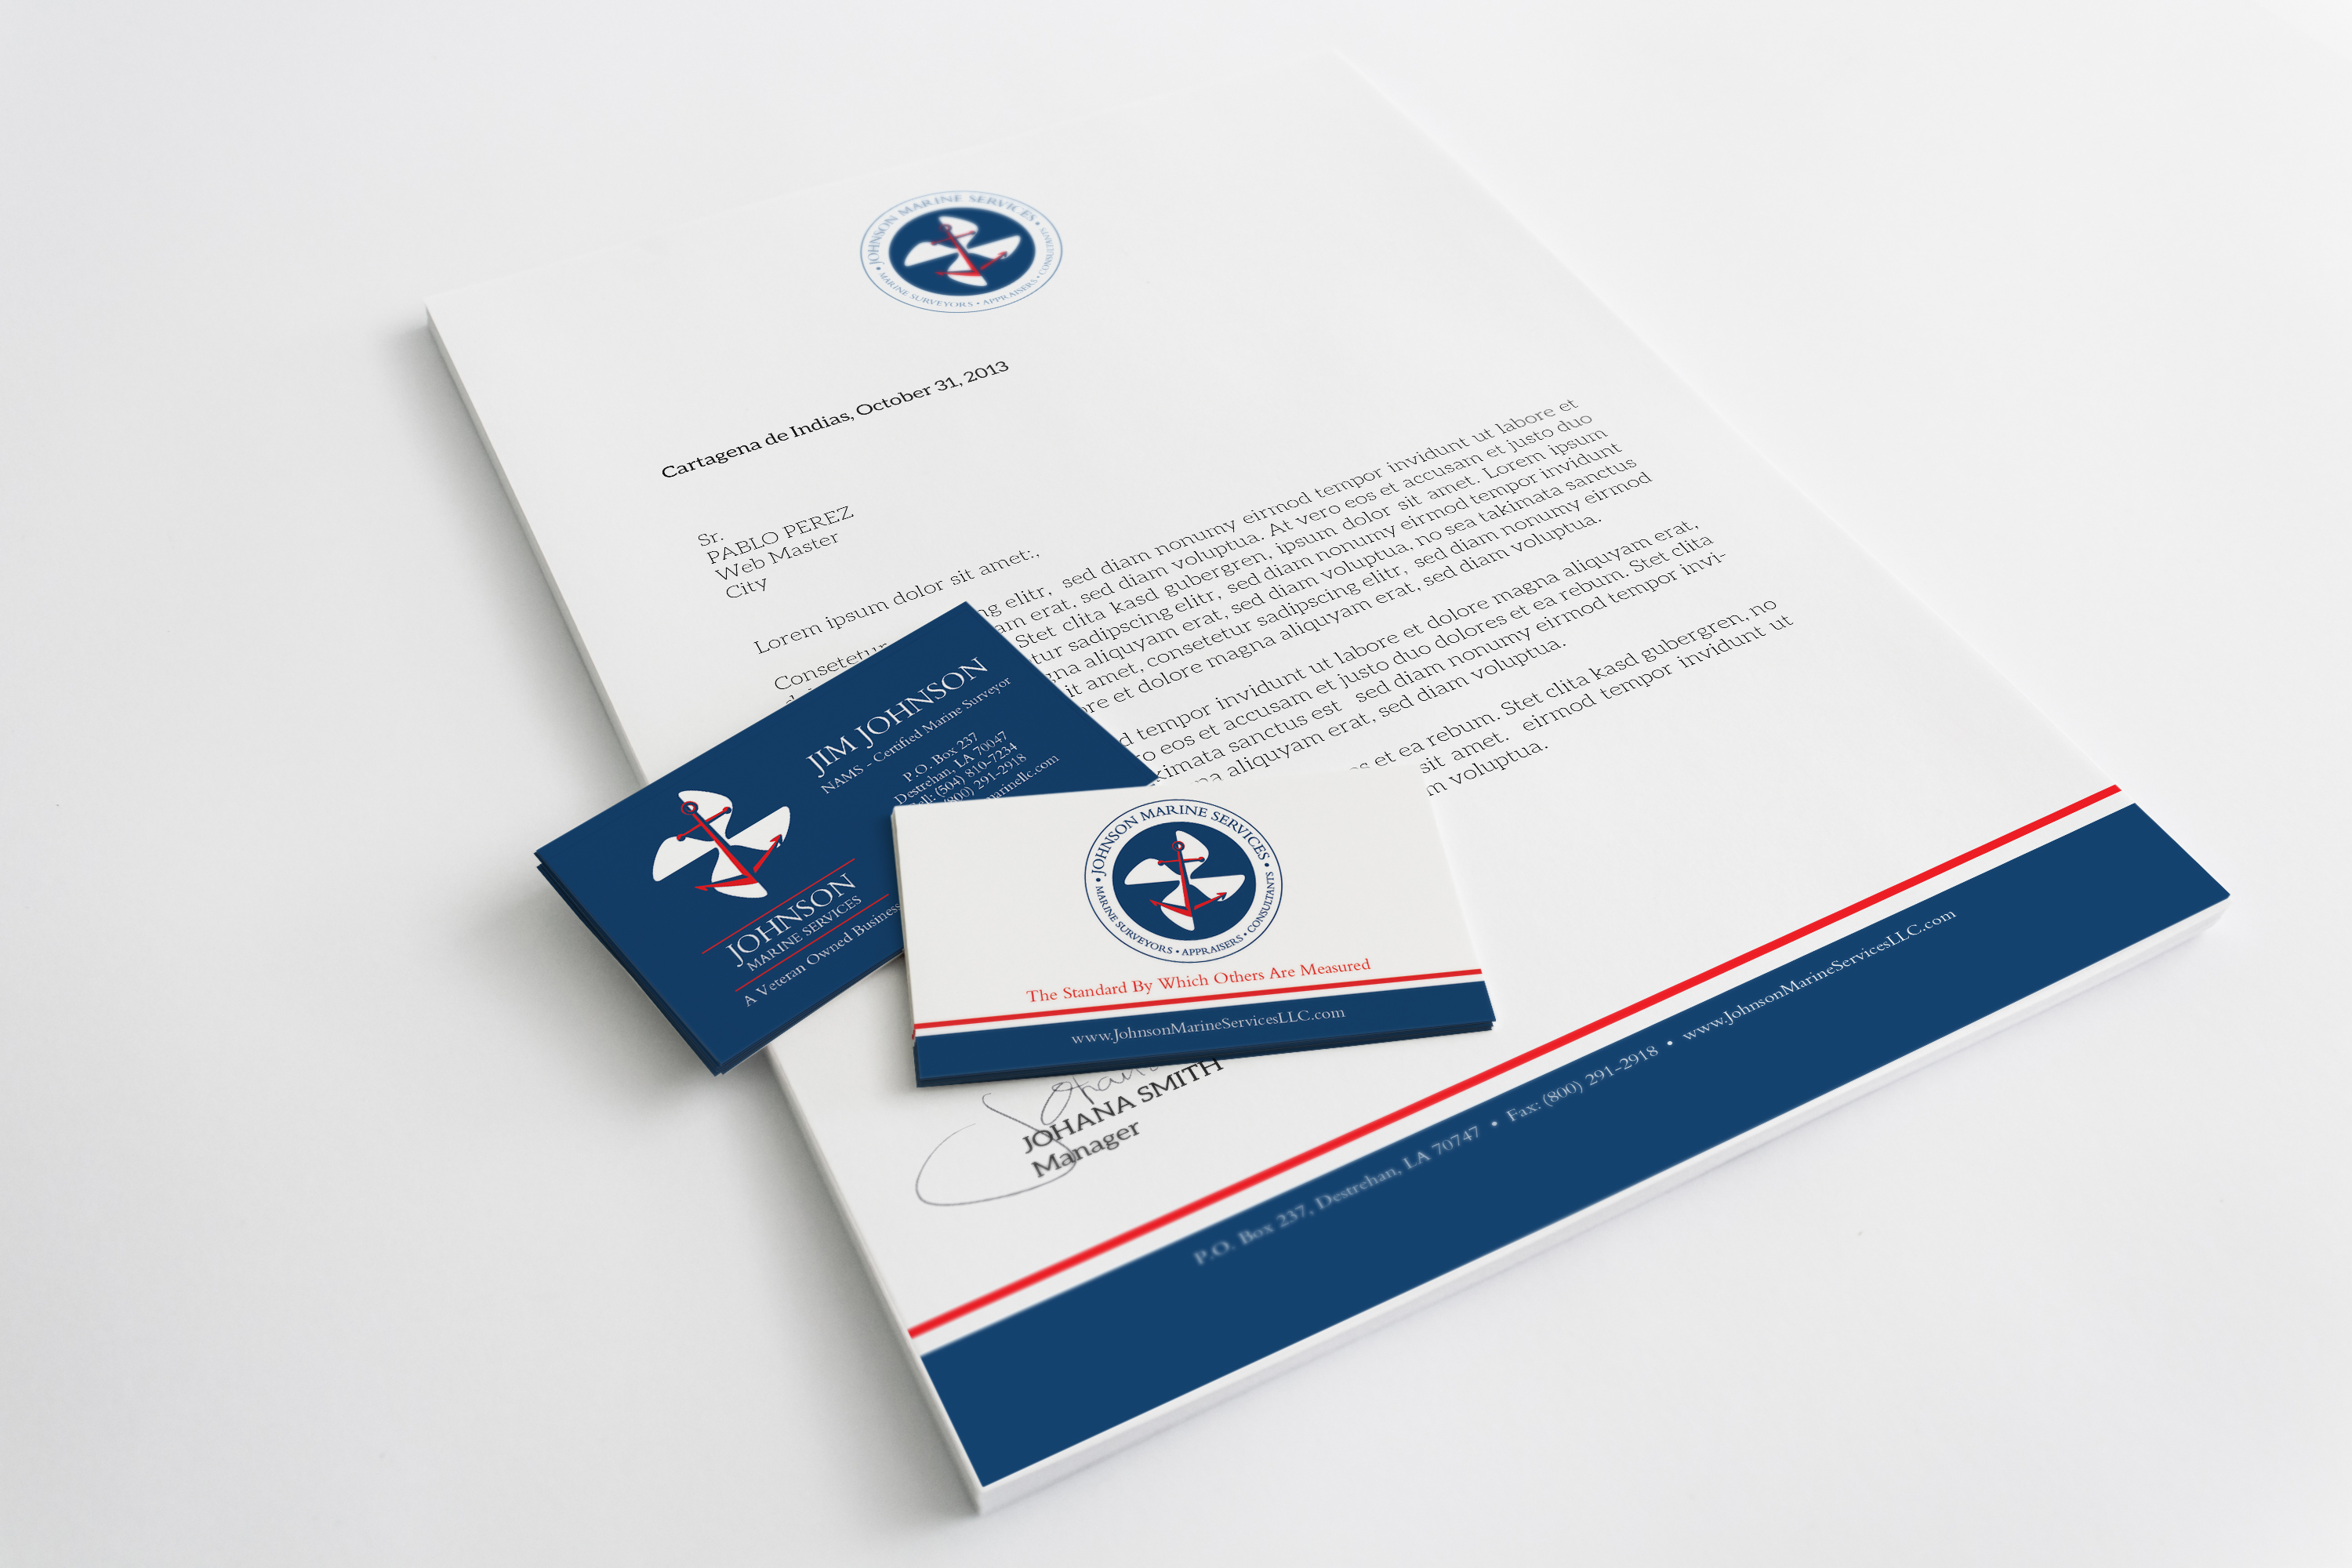 Identity logo design archives good work marketing johnson marine services logo and marketing collateral design magicingreecefo Gallery